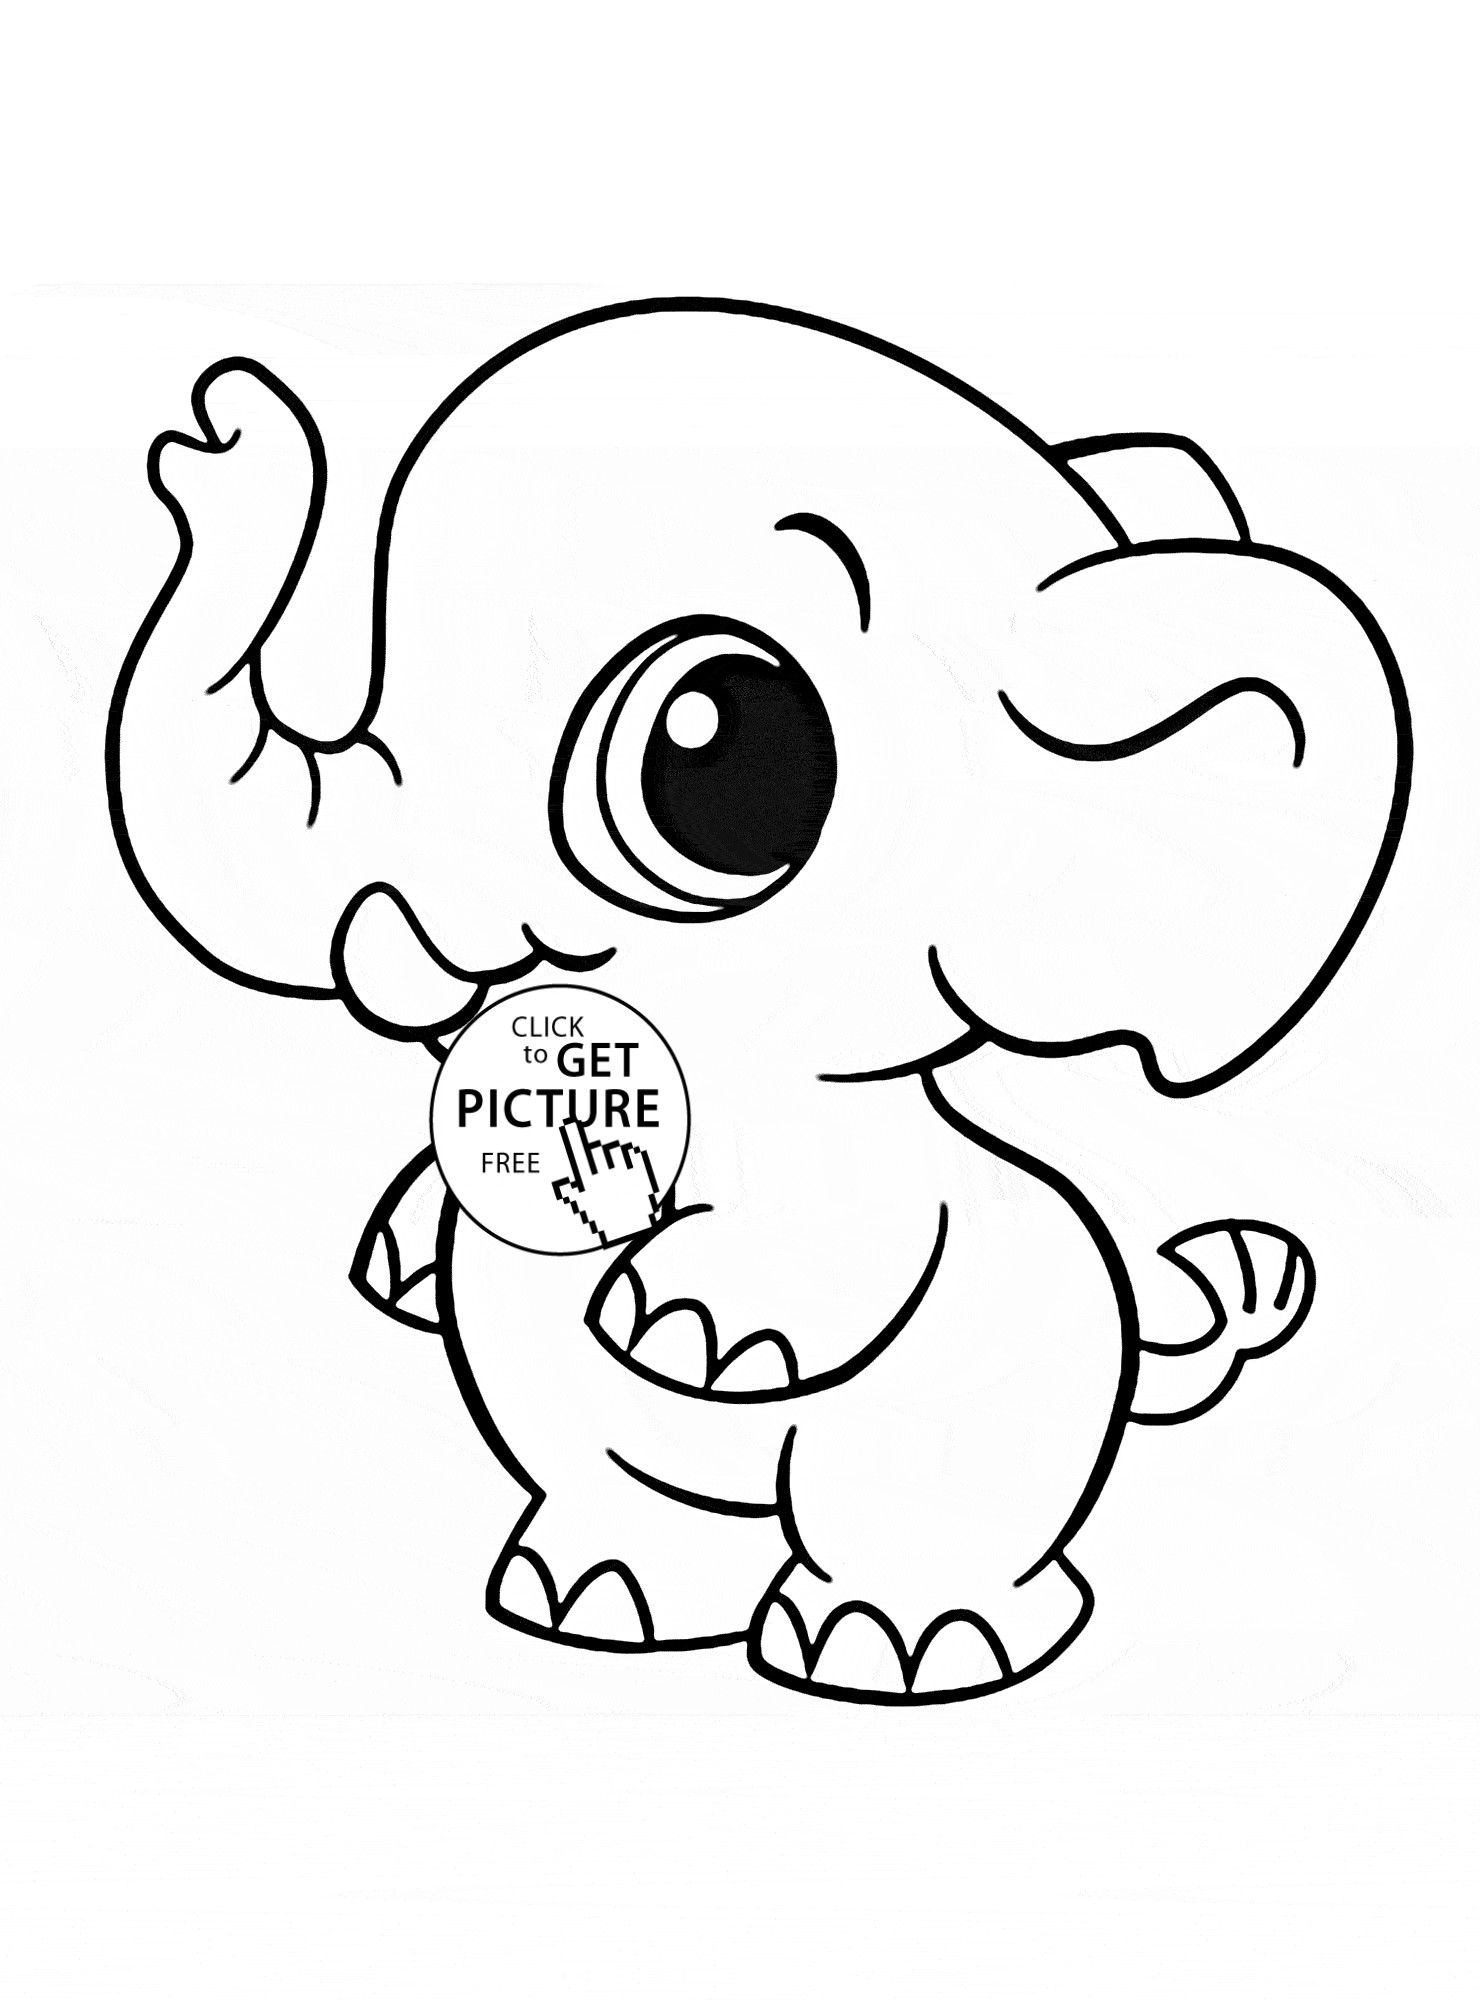 Cute Coloring Pages Of Animals From The Thousand Photographs Online With Regards To C Elephant Coloring Page Farm Animal Coloring Pages Animal Coloring Books